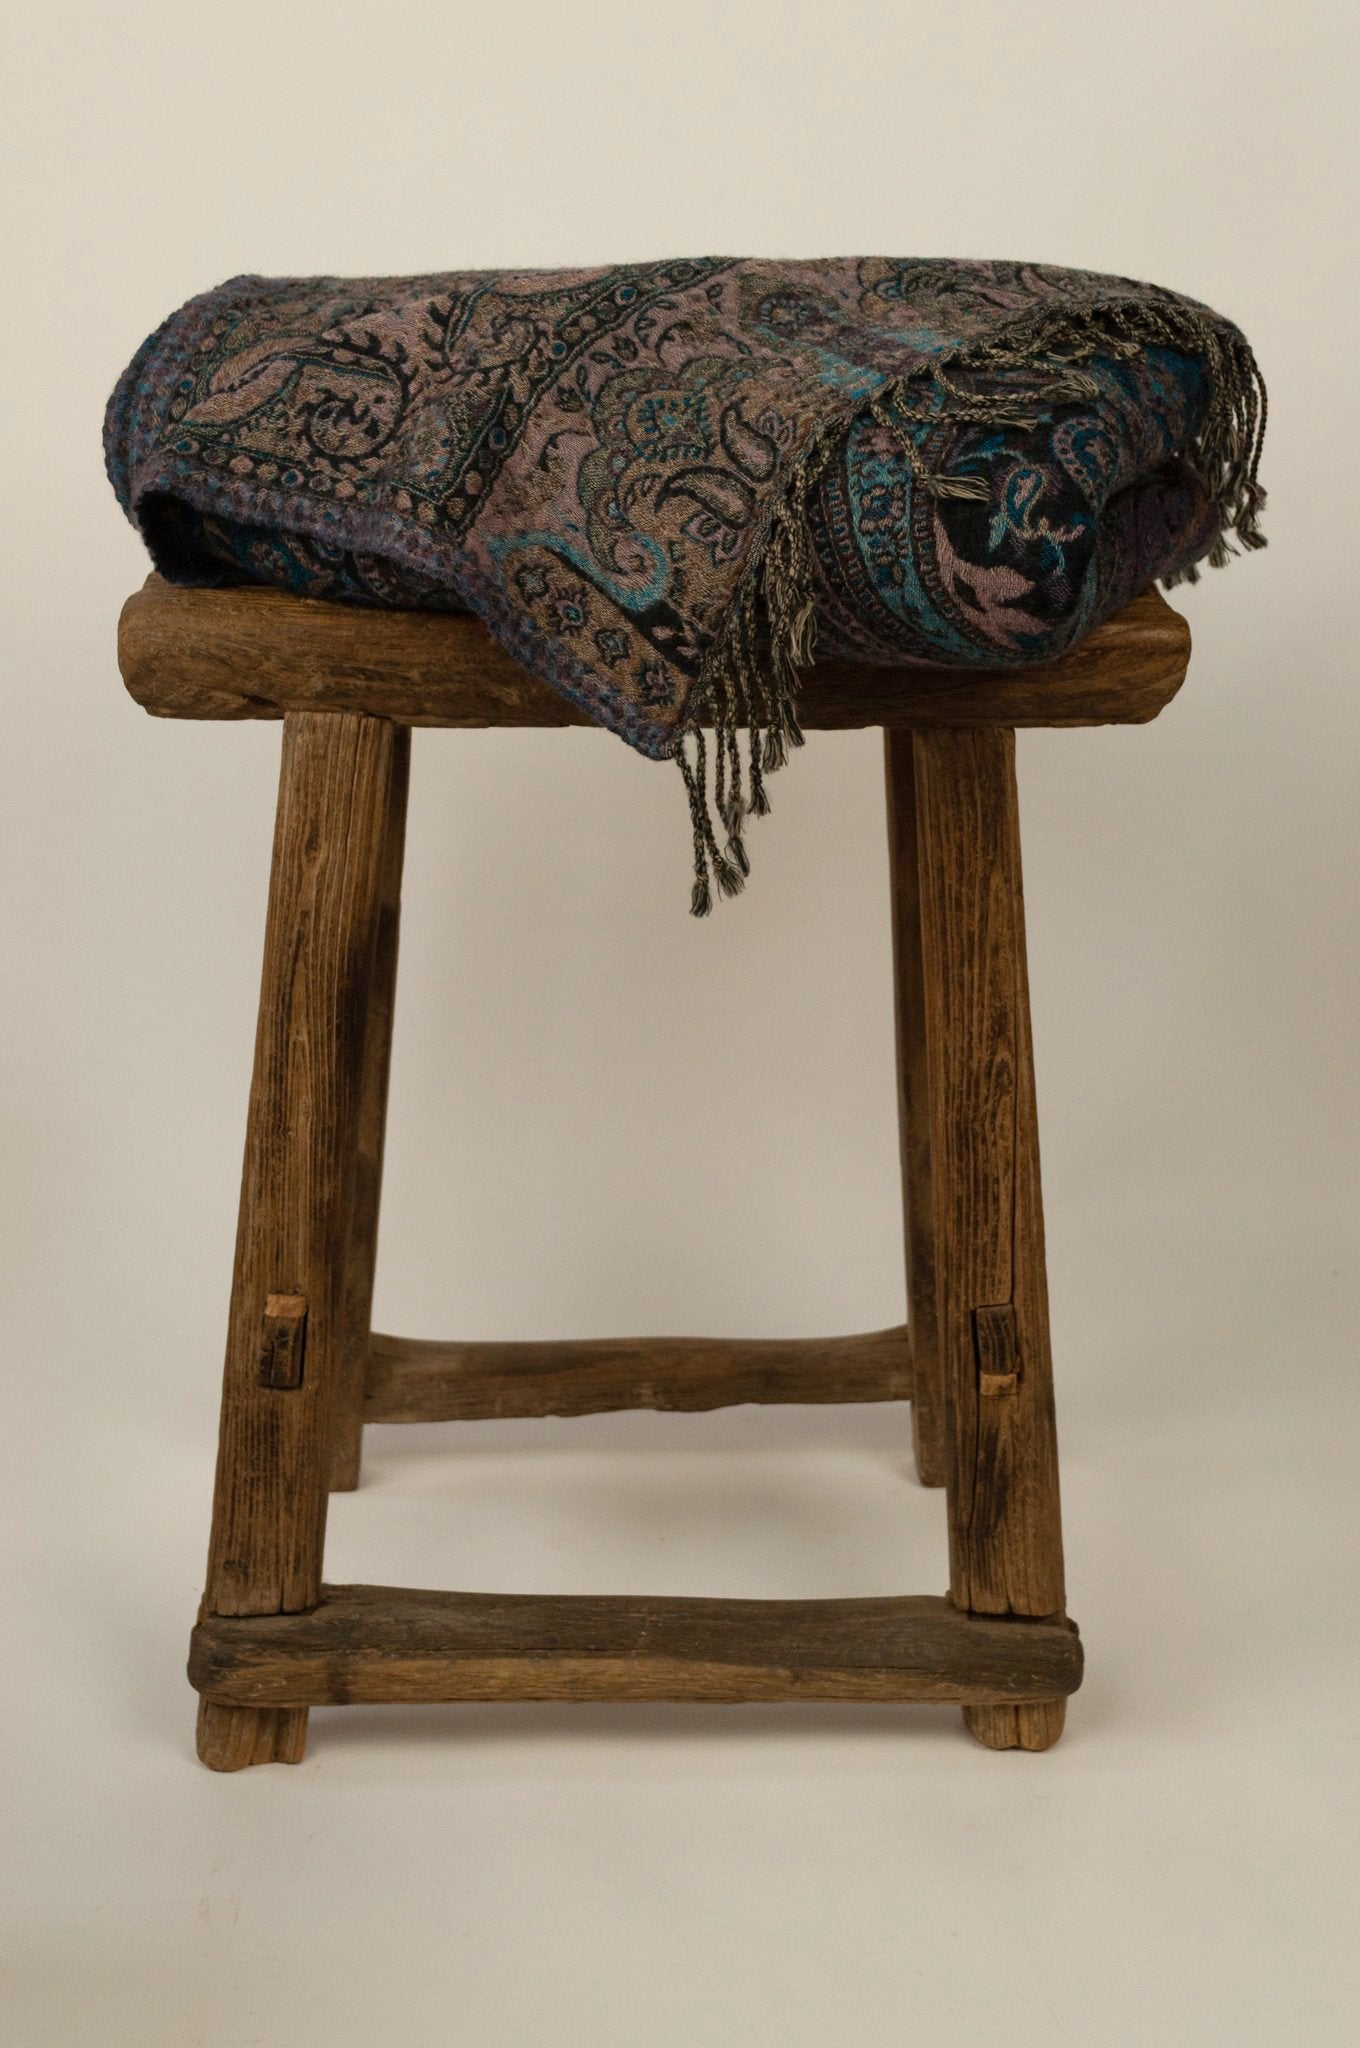 Juniper Hearth pure wool reversible tasseled throw is a classic paisley design in shades of blue and teal, with a soft mauve ground on the reverse.